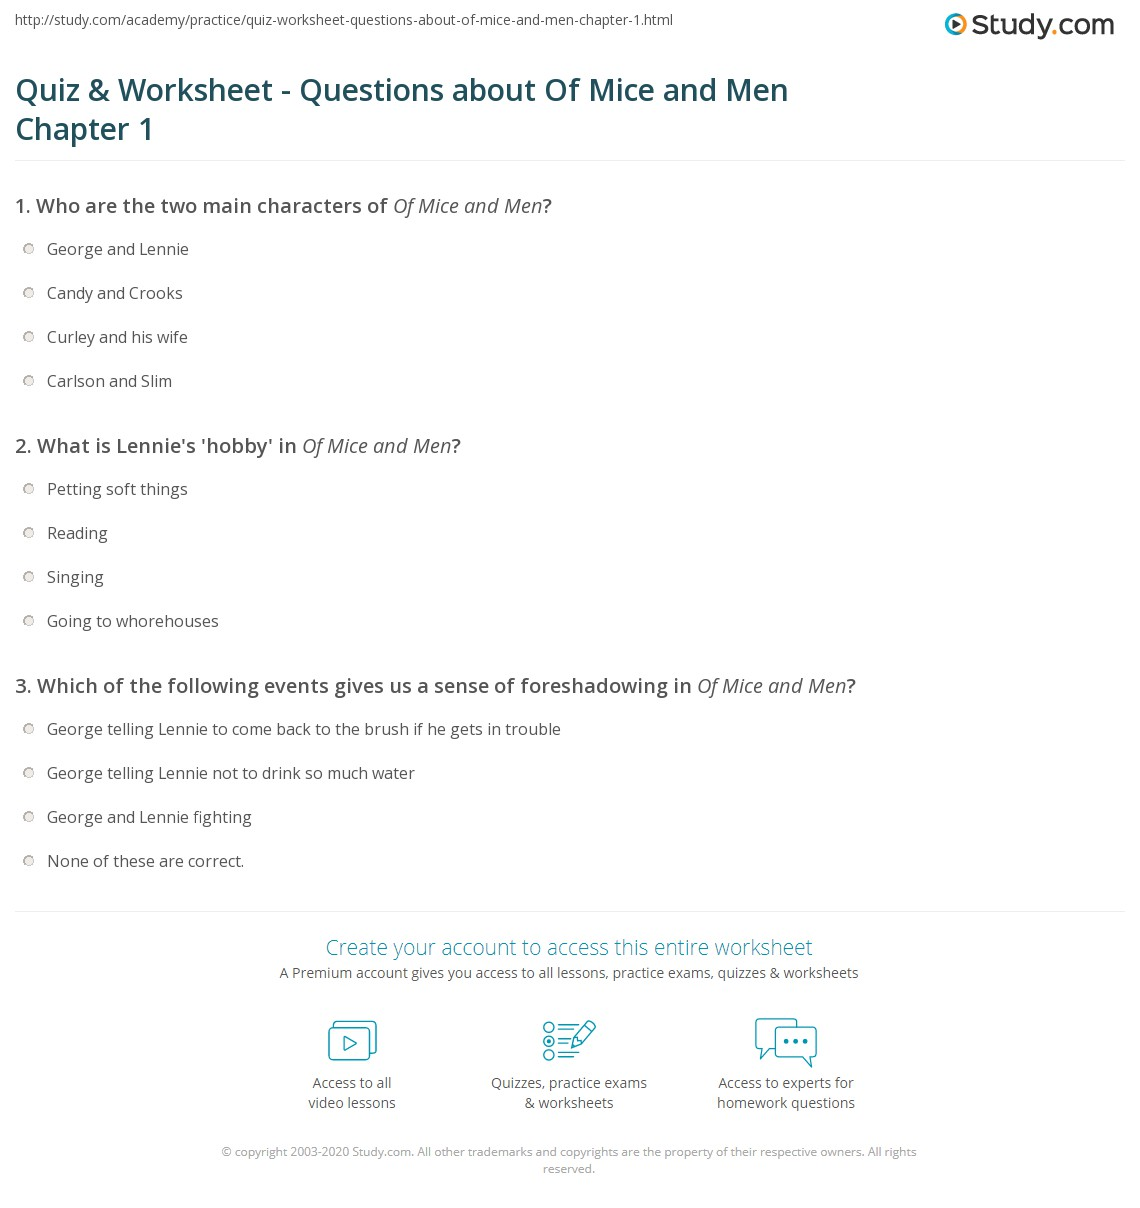 of mice and men essay quiz worksheet questions about of mice and  quiz worksheet questions about of mice and men chapter 1 print of mice and men chapter